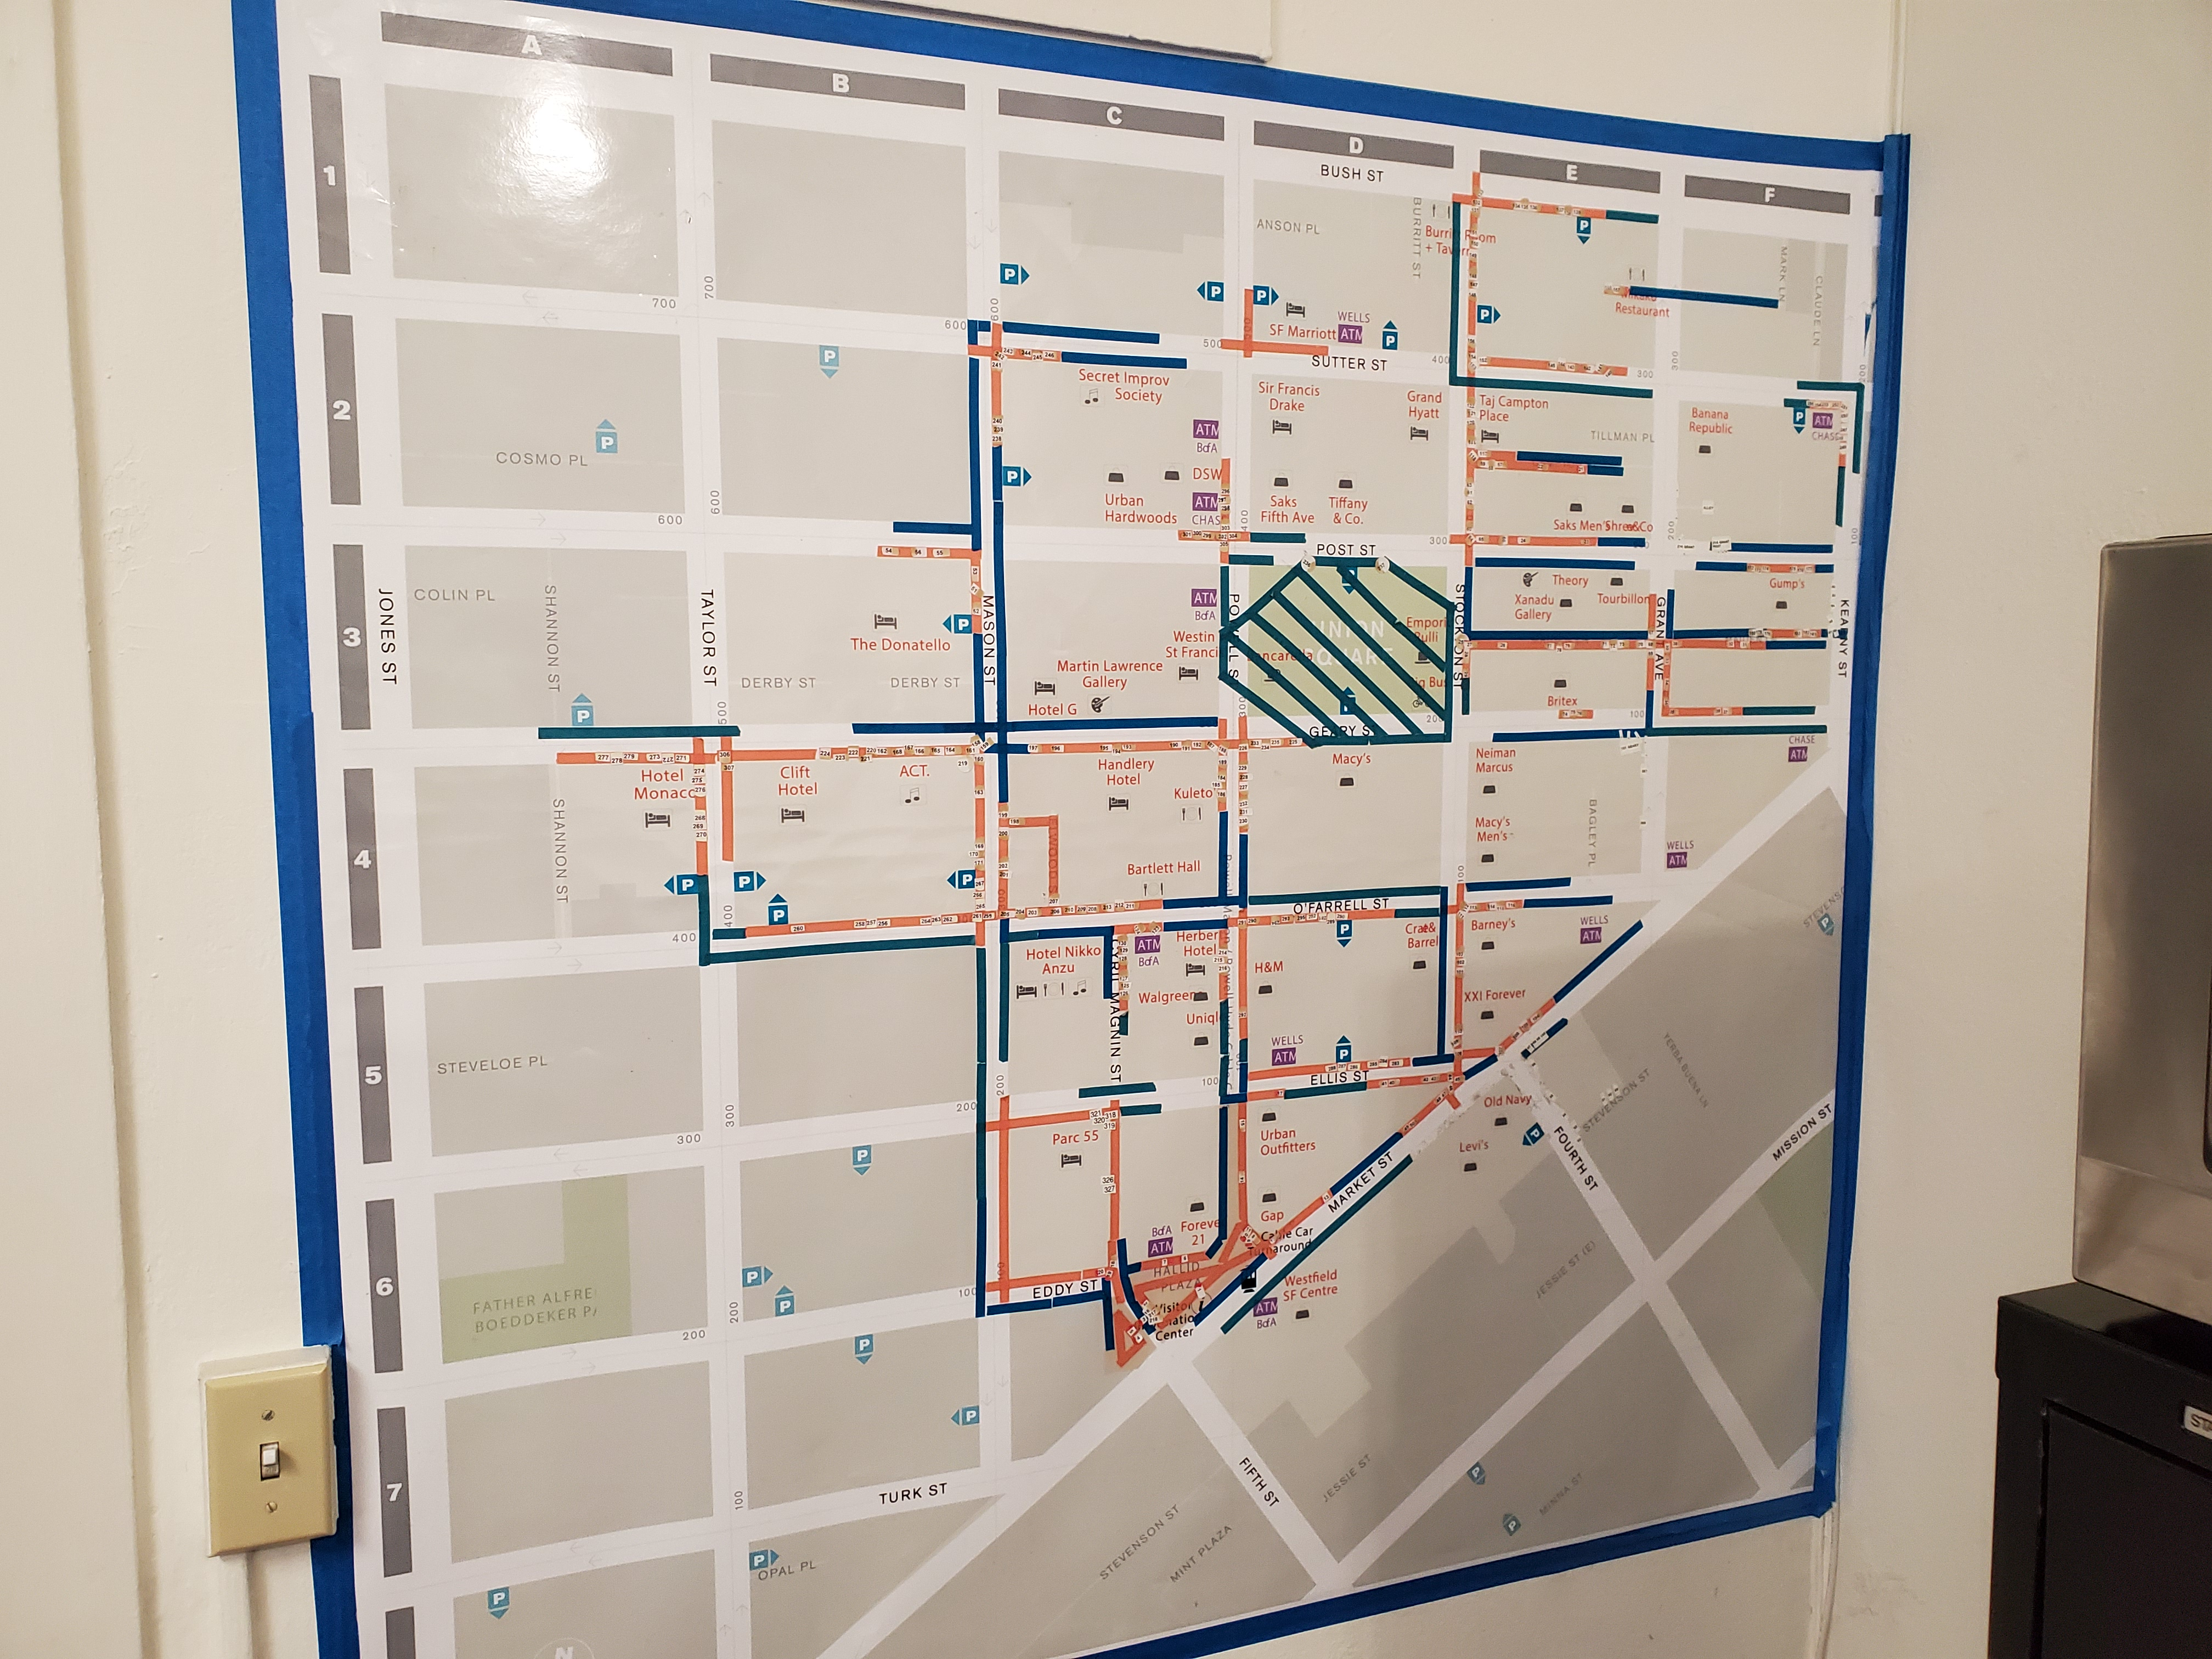 A map taped to wall showing where surveillance cameras are in Union Square